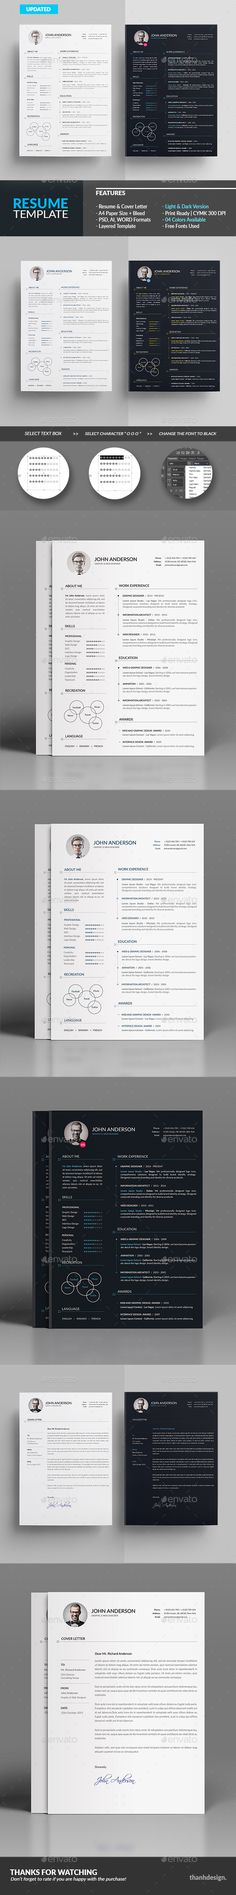 Resume Resume cv, Cv template and Design resume - how to upload resume on resume